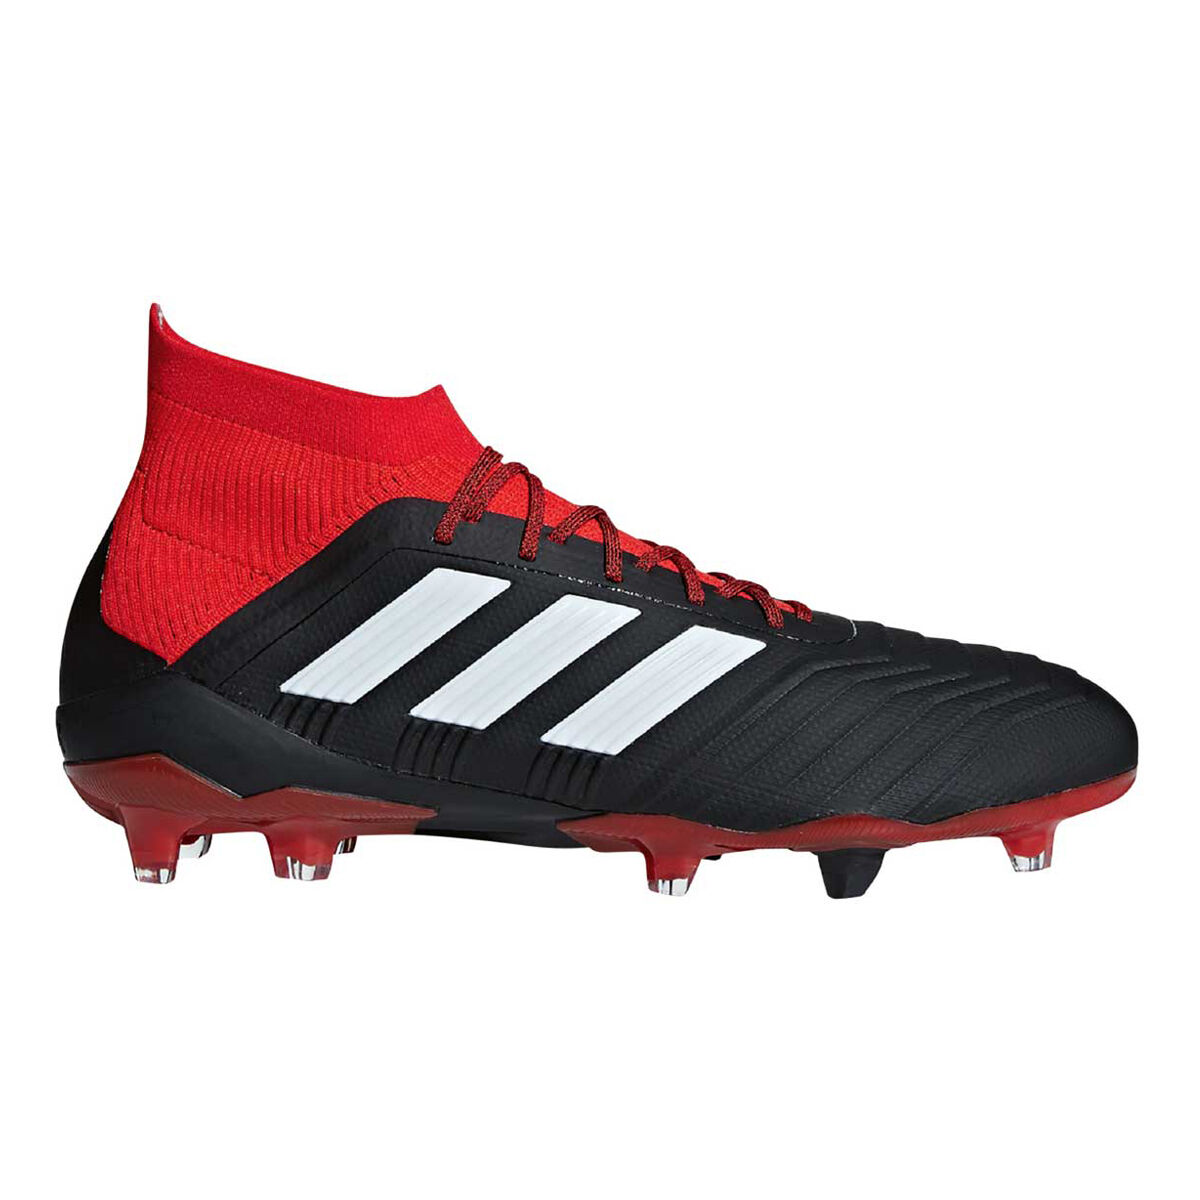 e711f552a promo code for adidas predator precision 6f461 8c2c7; cheap adidas predator  18.1 mens football boots rebelhi res 3e72a e8175